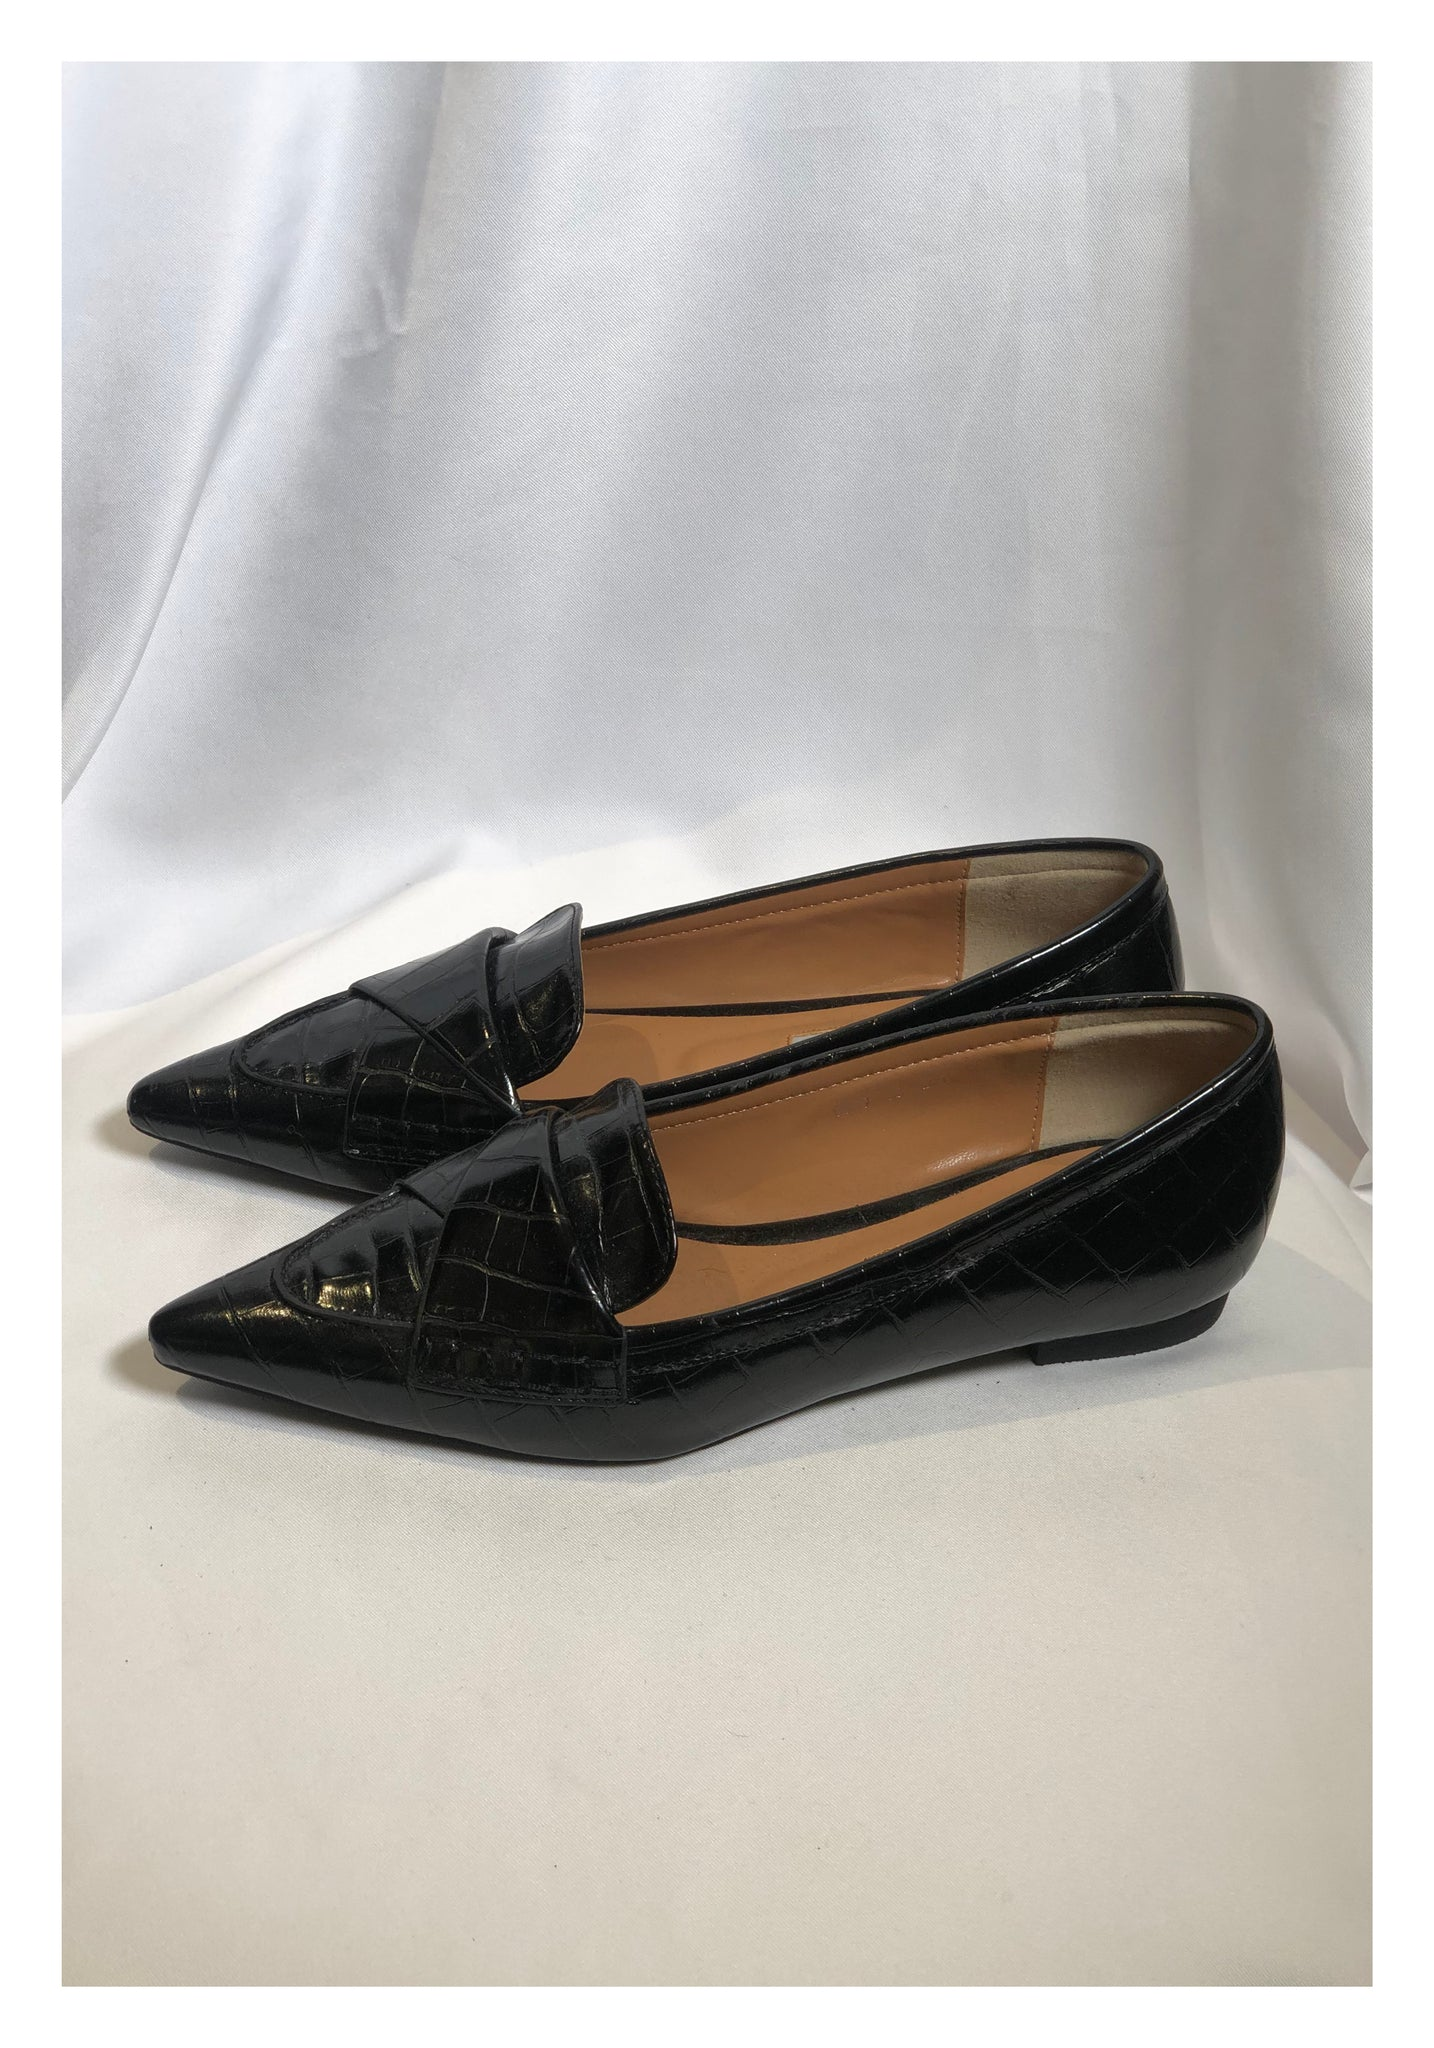 Sample Shoes - Croc-Effect Pointed Fold Loafer Black - whoami